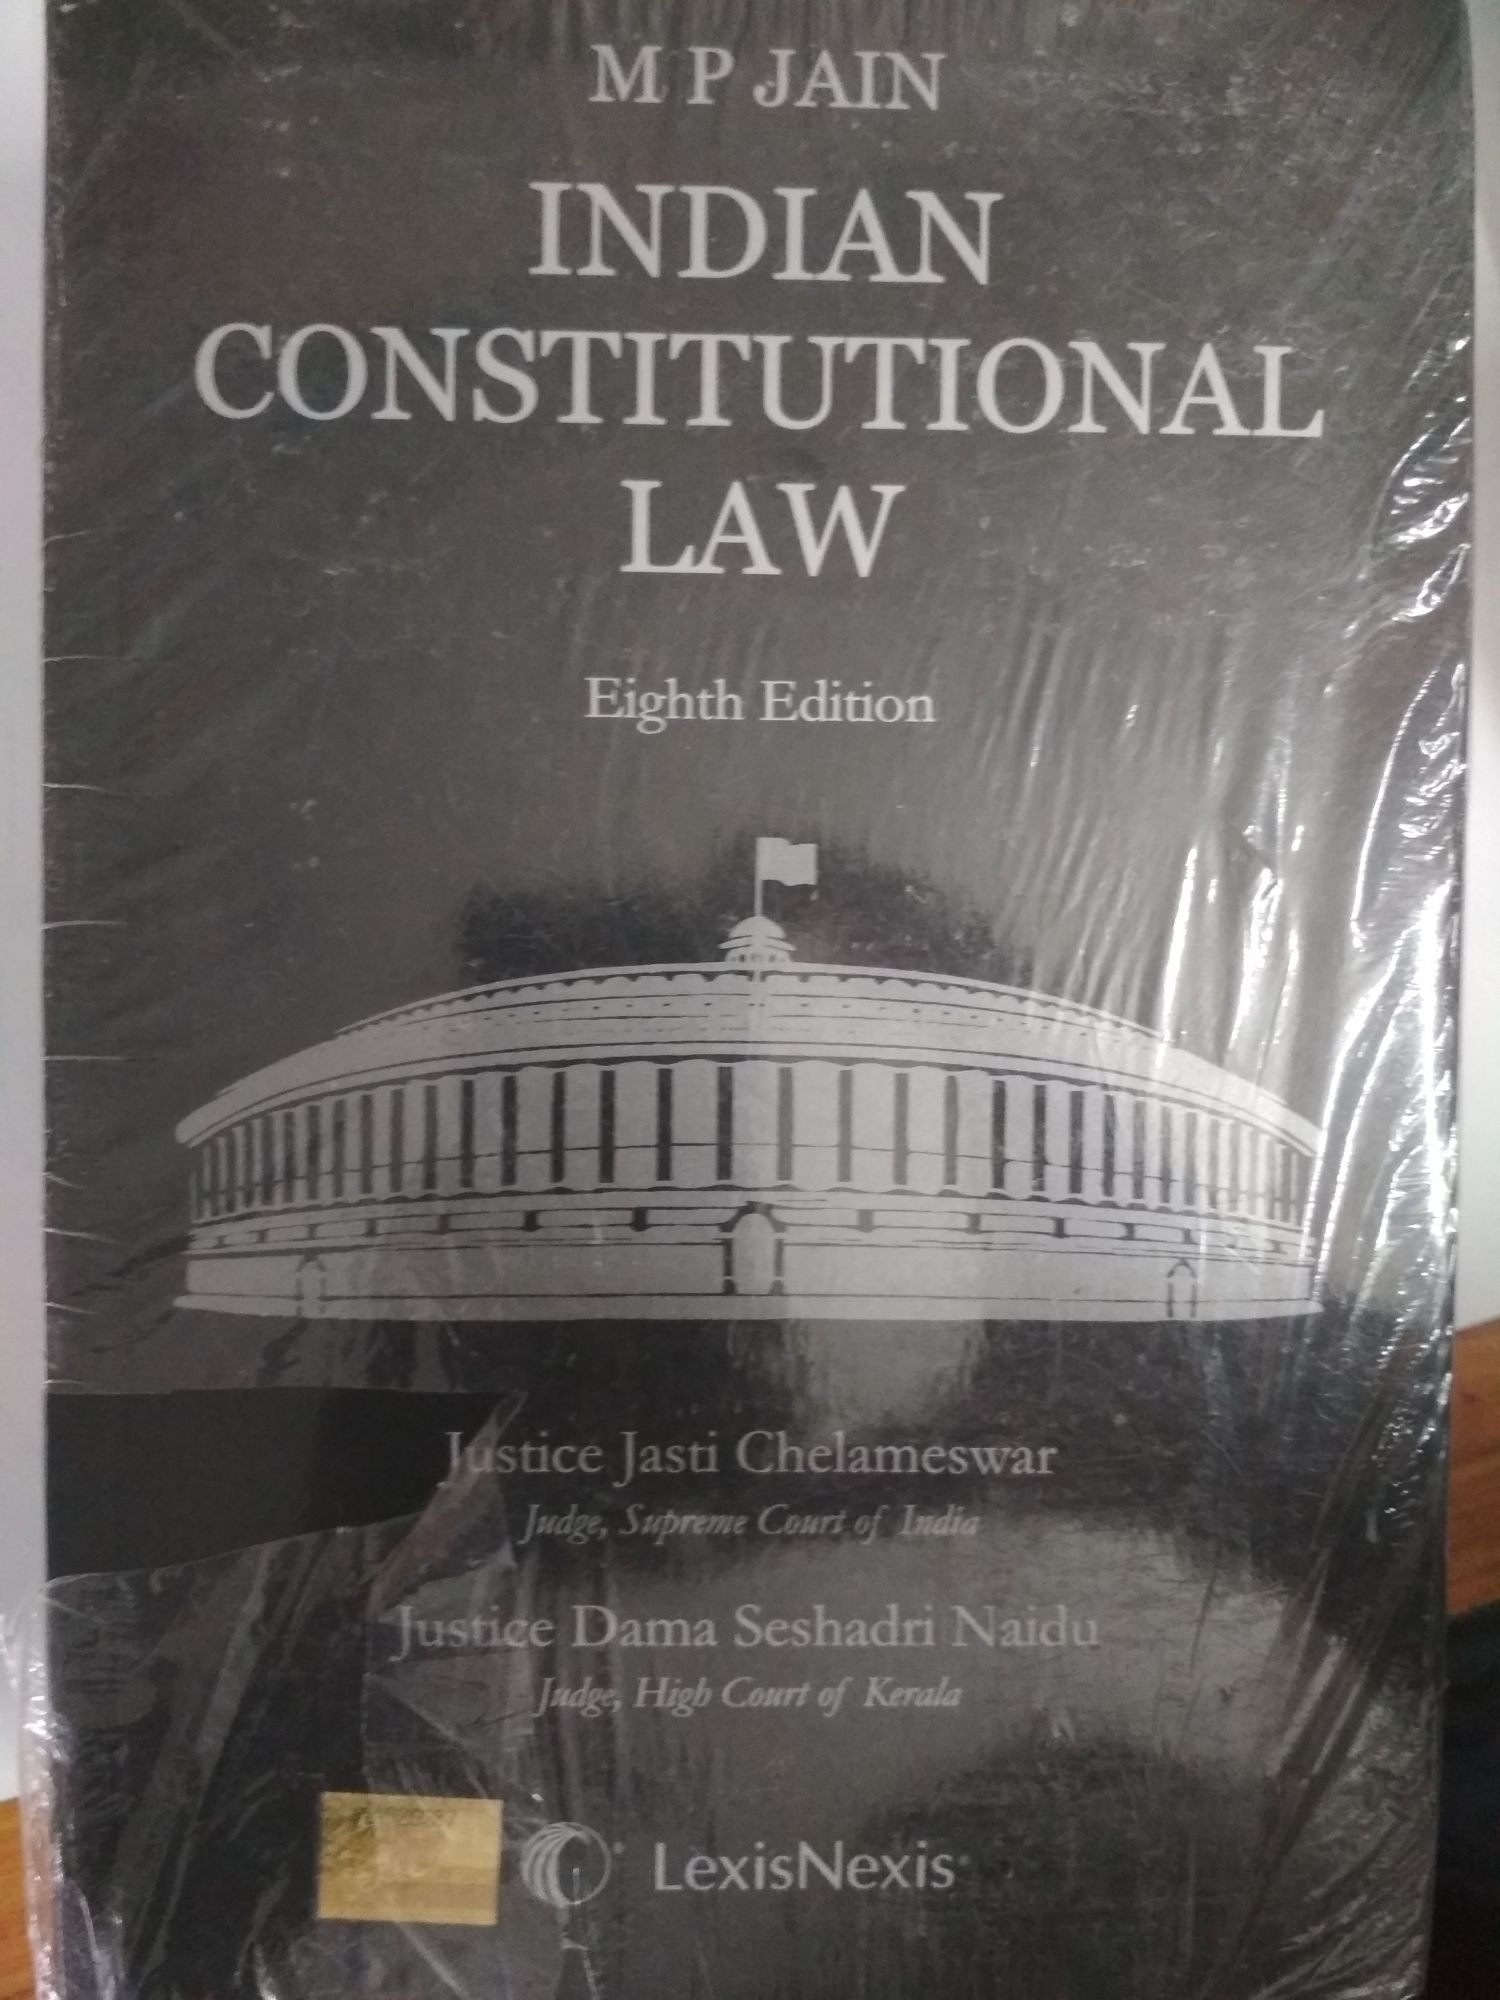 Lexis Nexis M.P. Jain Indian Constitutional Law (Eighted Edition)